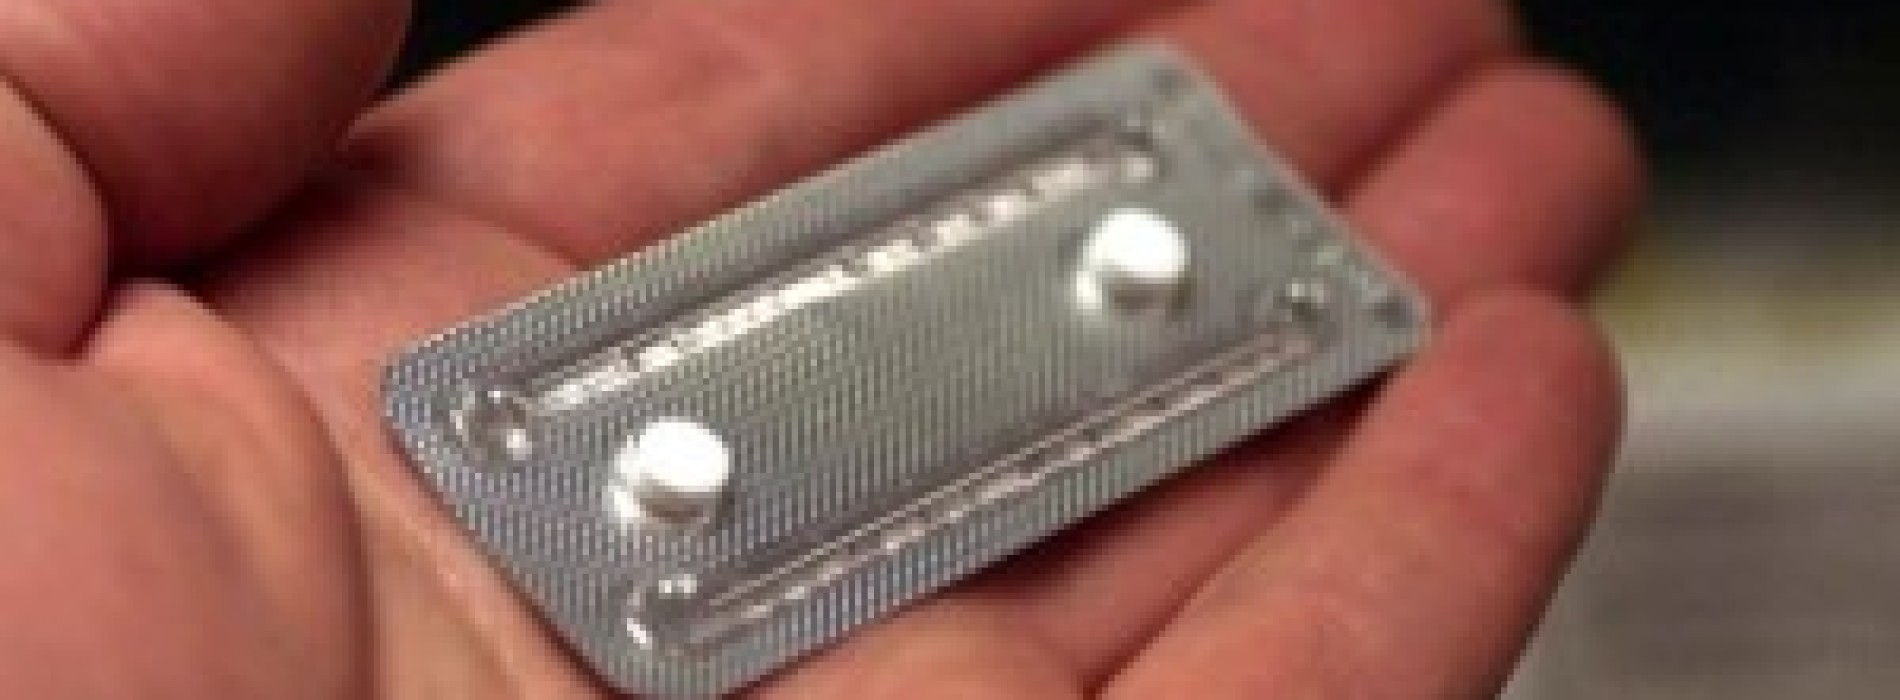 Facts you should know about Emergency Contraceptives